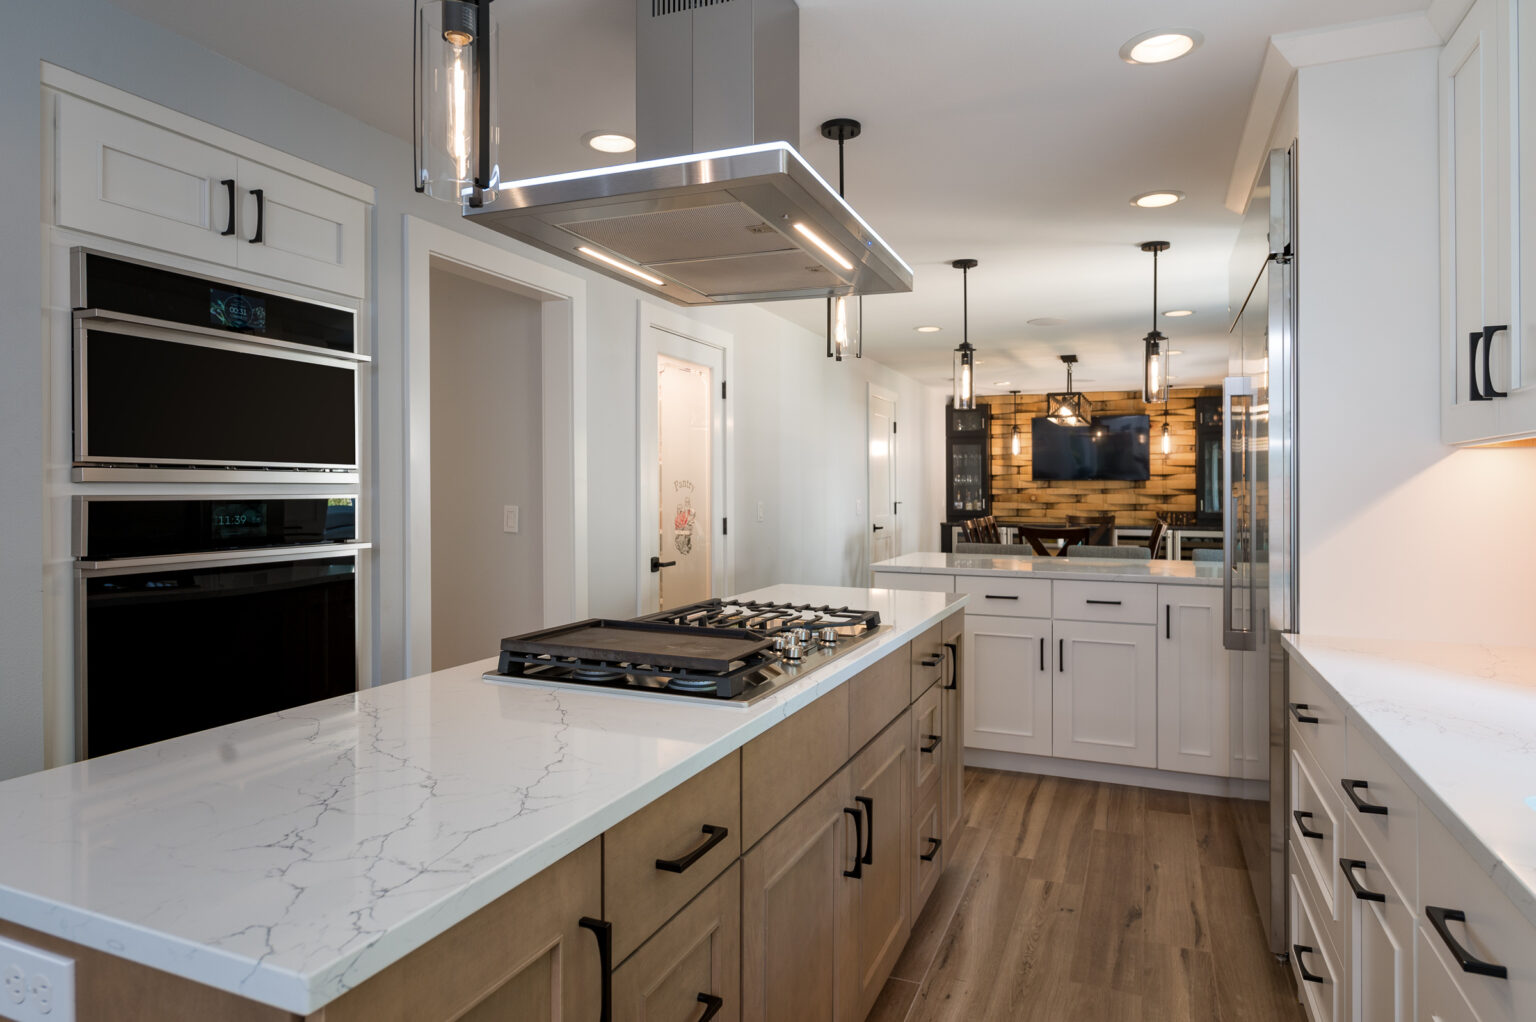 TWO TONED KITCHEN REMODEL 1